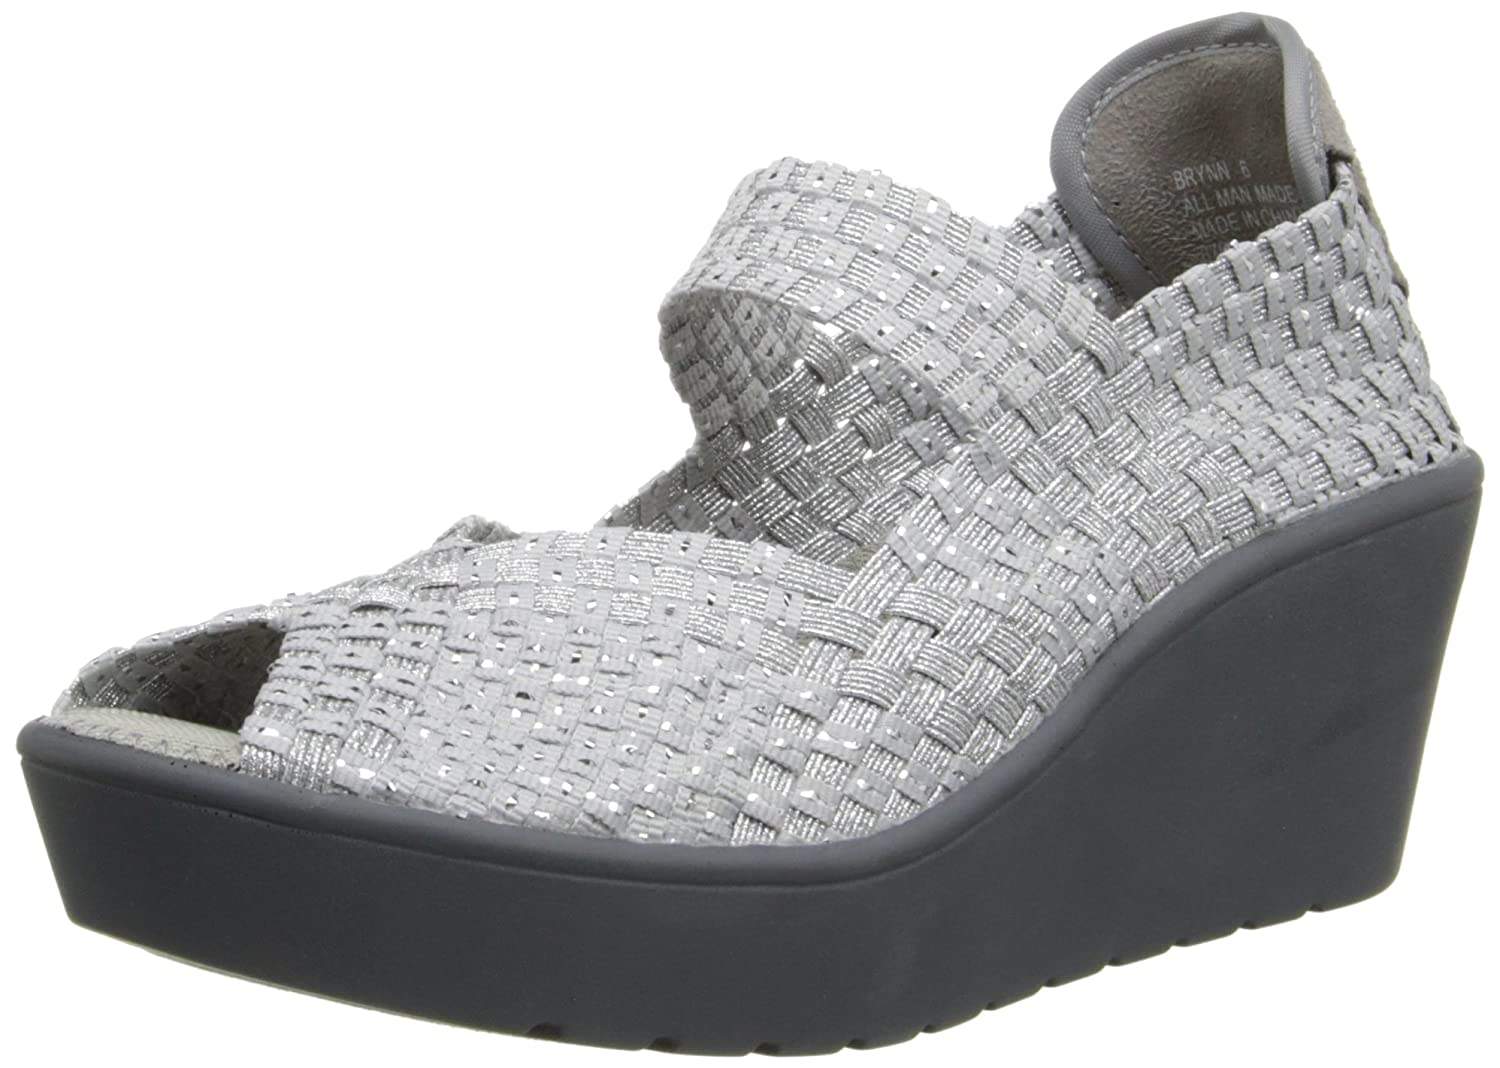 STEVEN by Steve Madden Women's Brynn Wedge Sandal